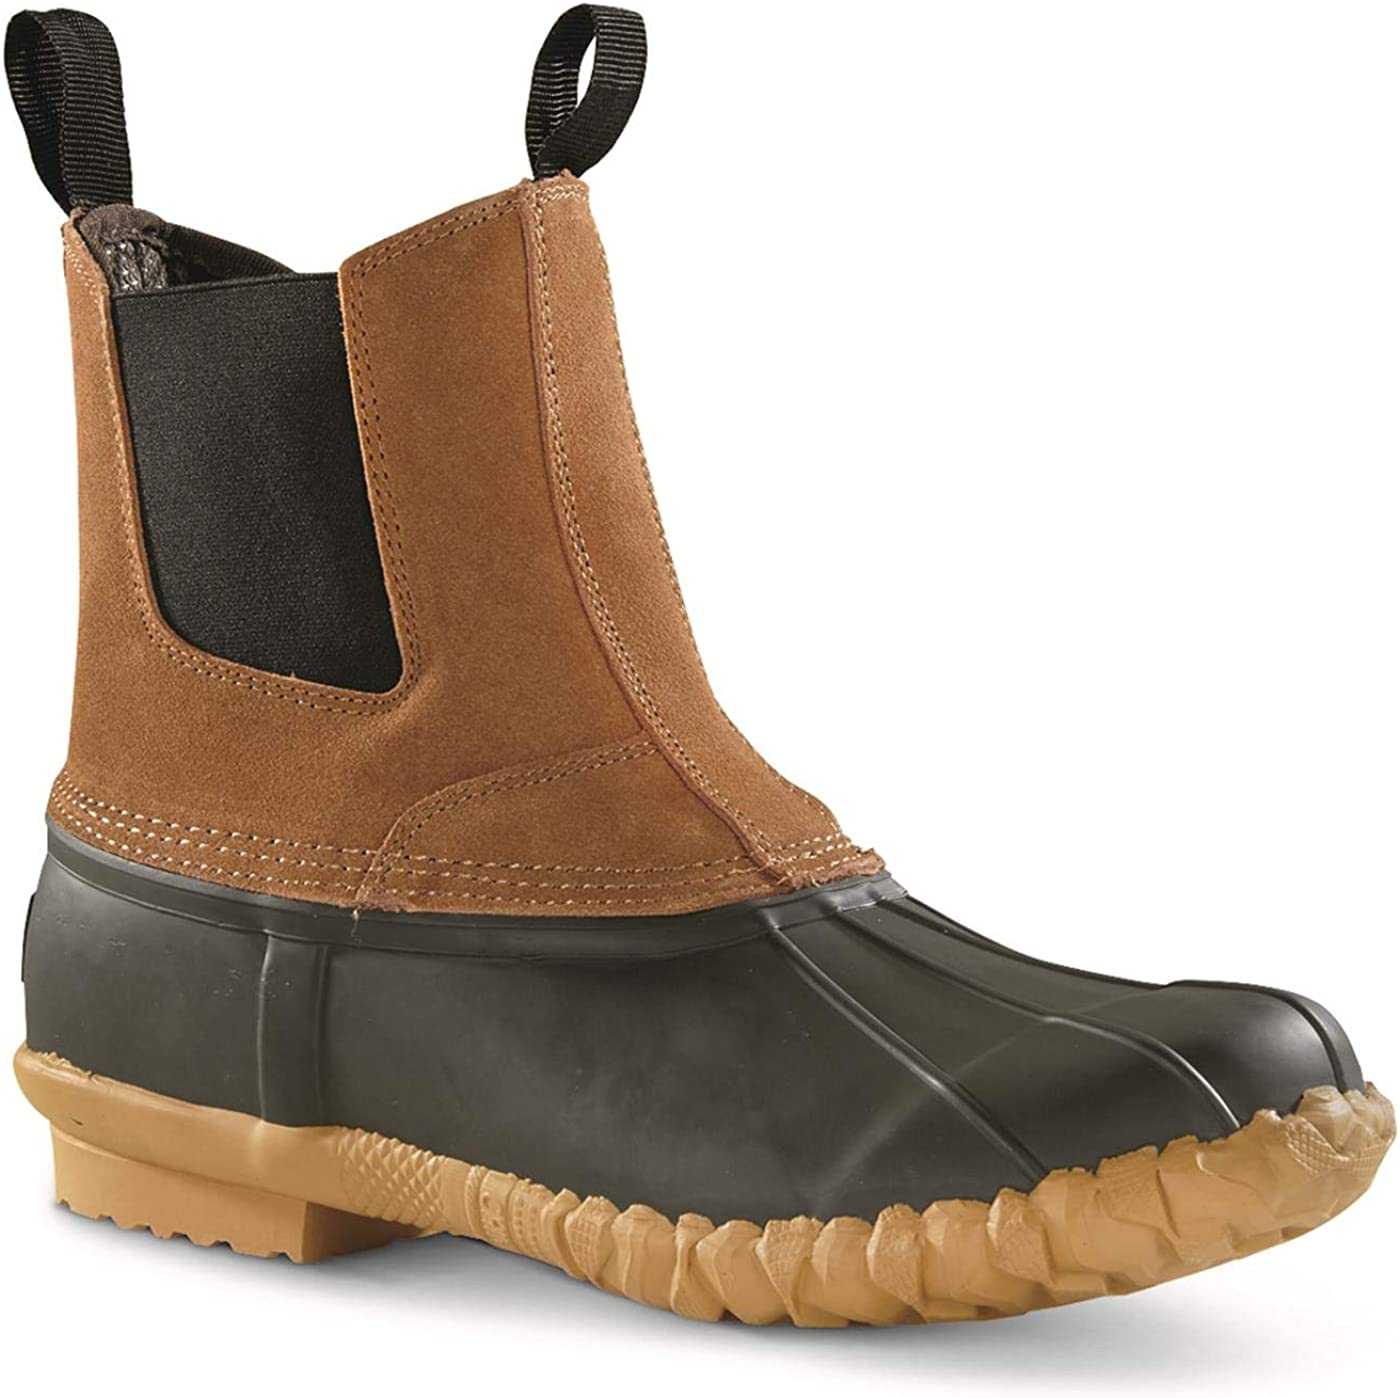 Guide Gear Pull-On Insulated Duck Boots